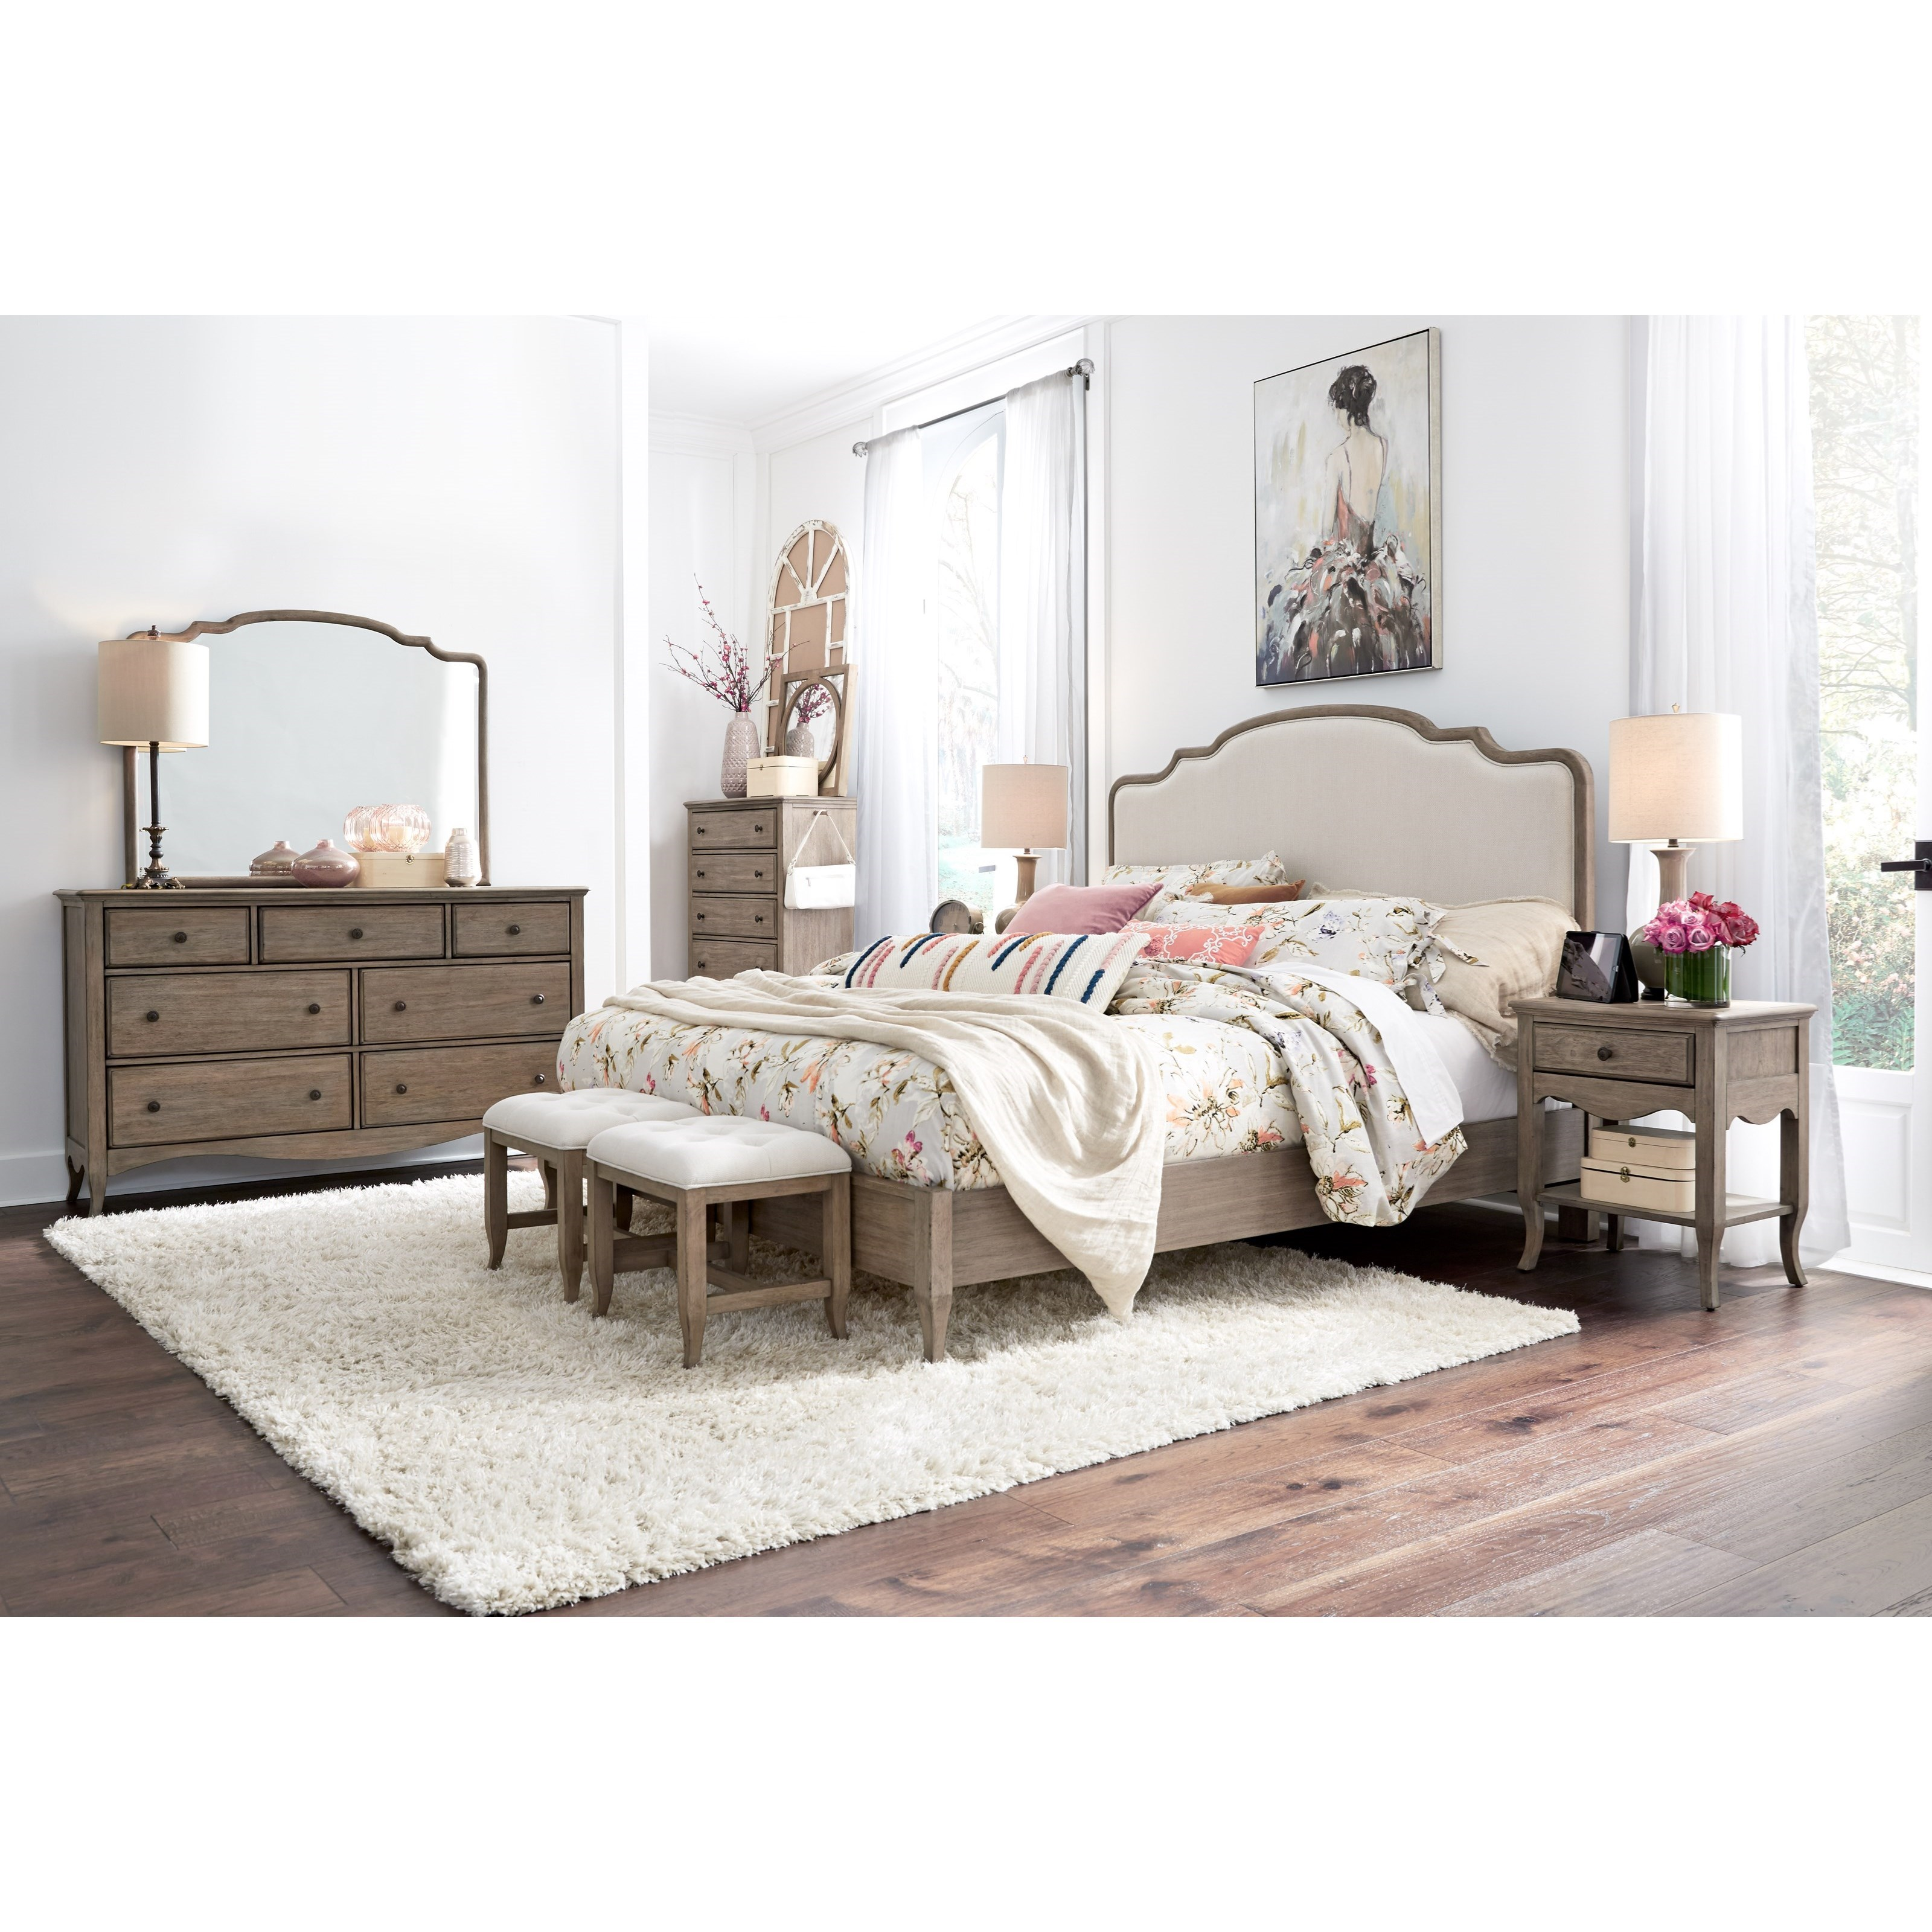 Provence King Bedroom Group by Aspenhome at Walker's Furniture